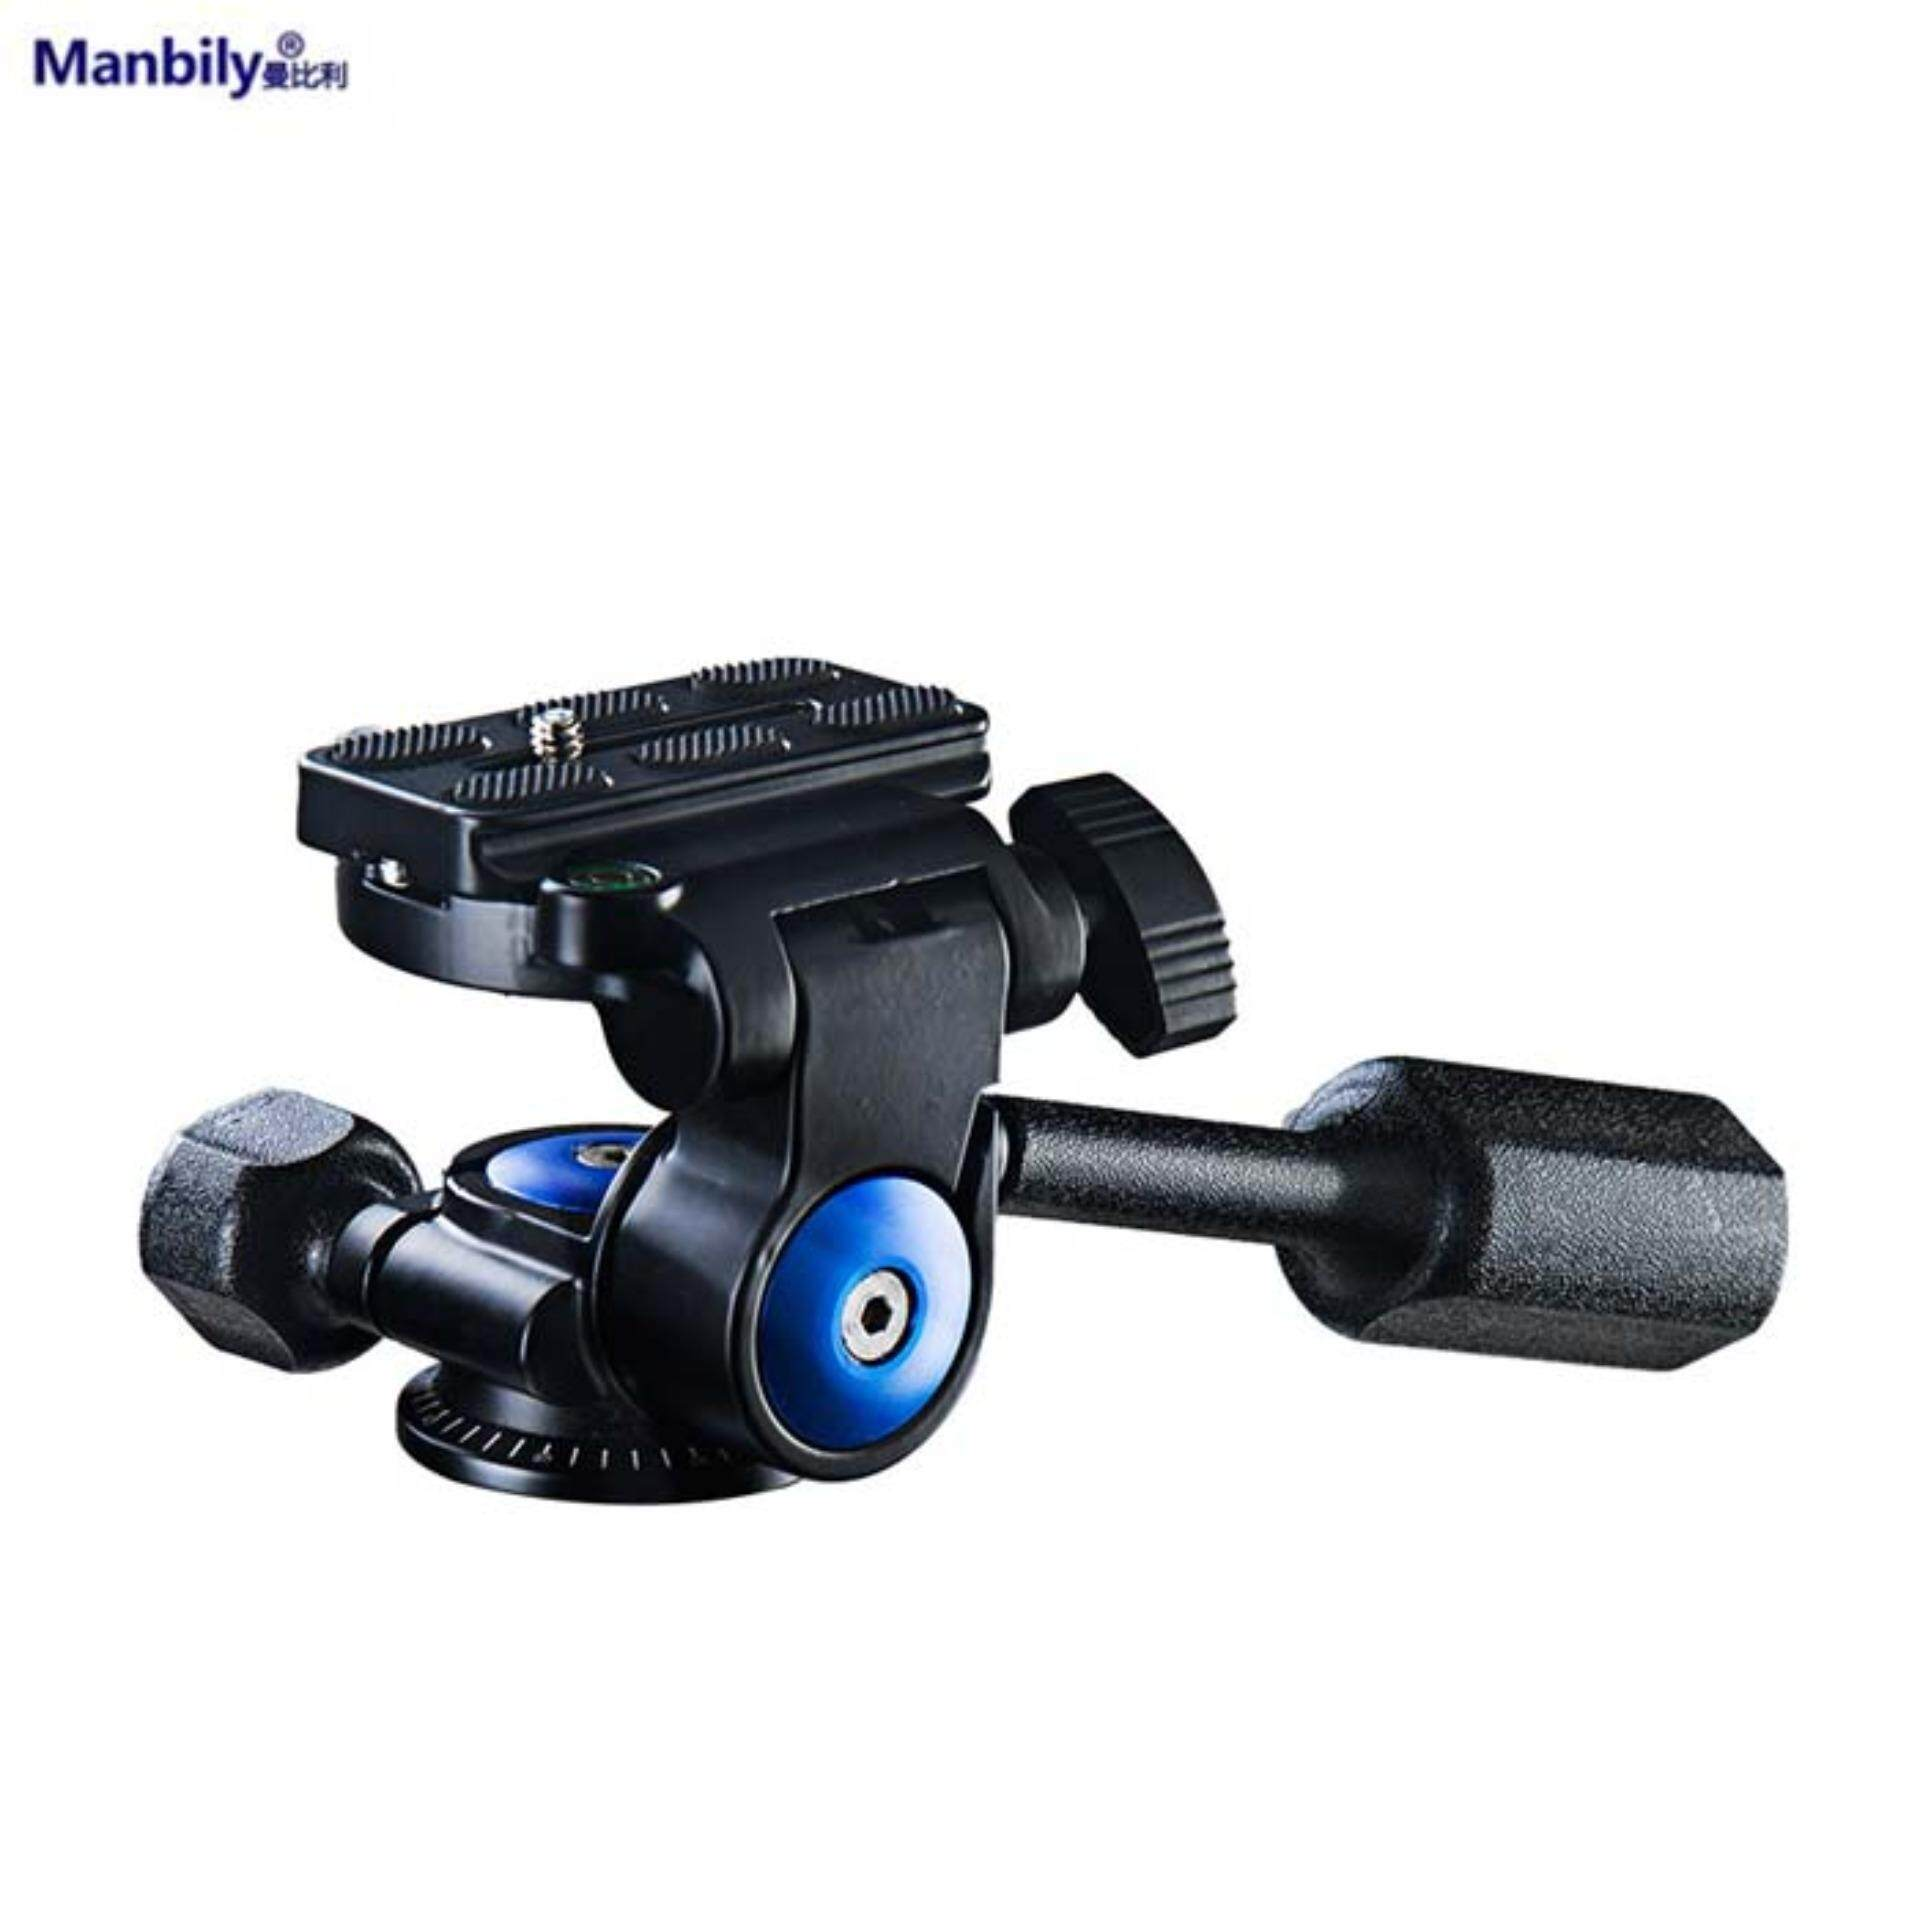 Manbily VH-40 Professional Camera Tripod Tilt Head Two-dimensional Pan Heads For Monopod Tripod